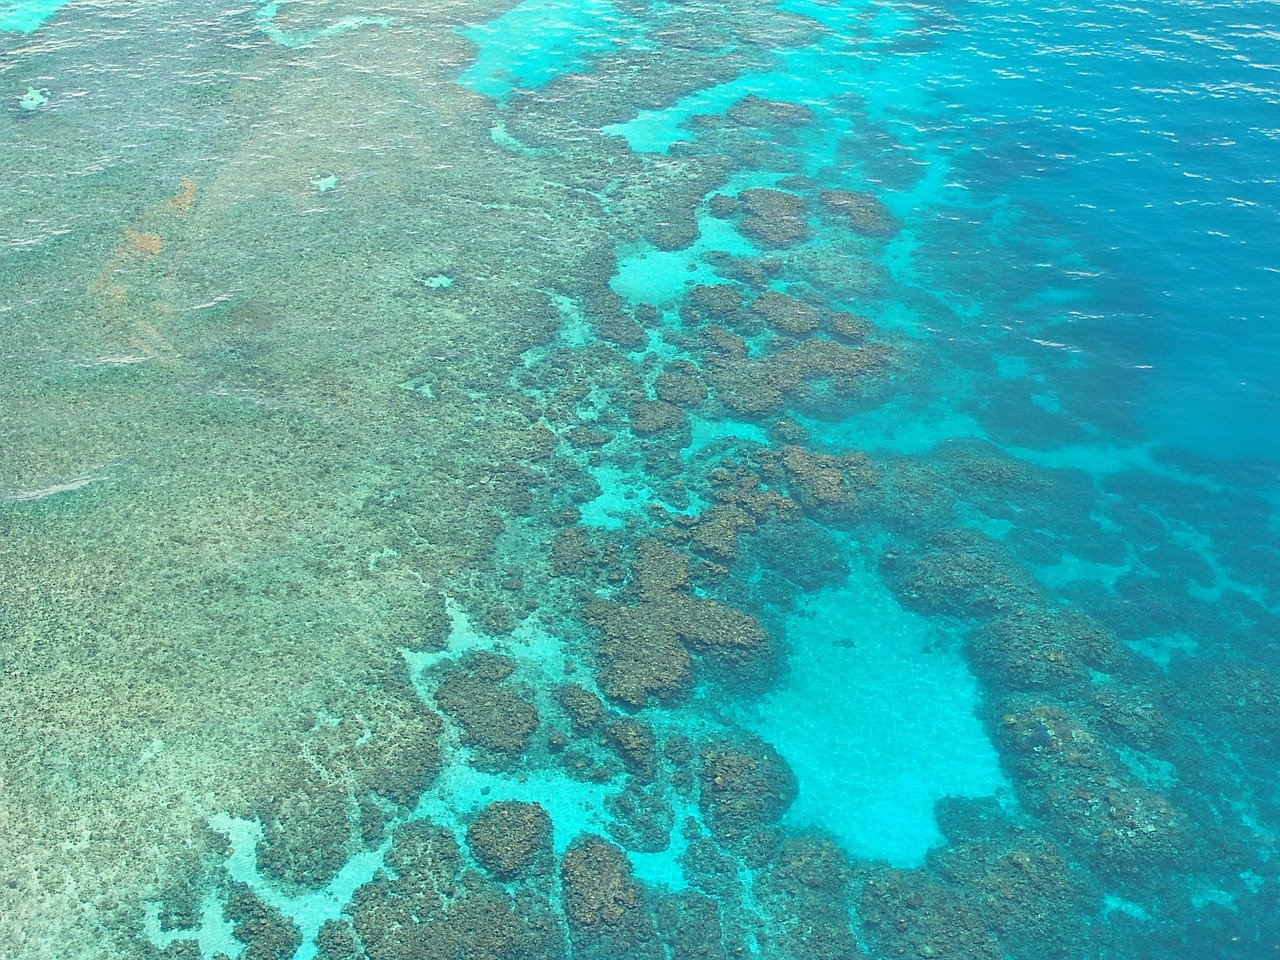 10 Reasons to Go Scuba Diving at the Great Barrier Reef